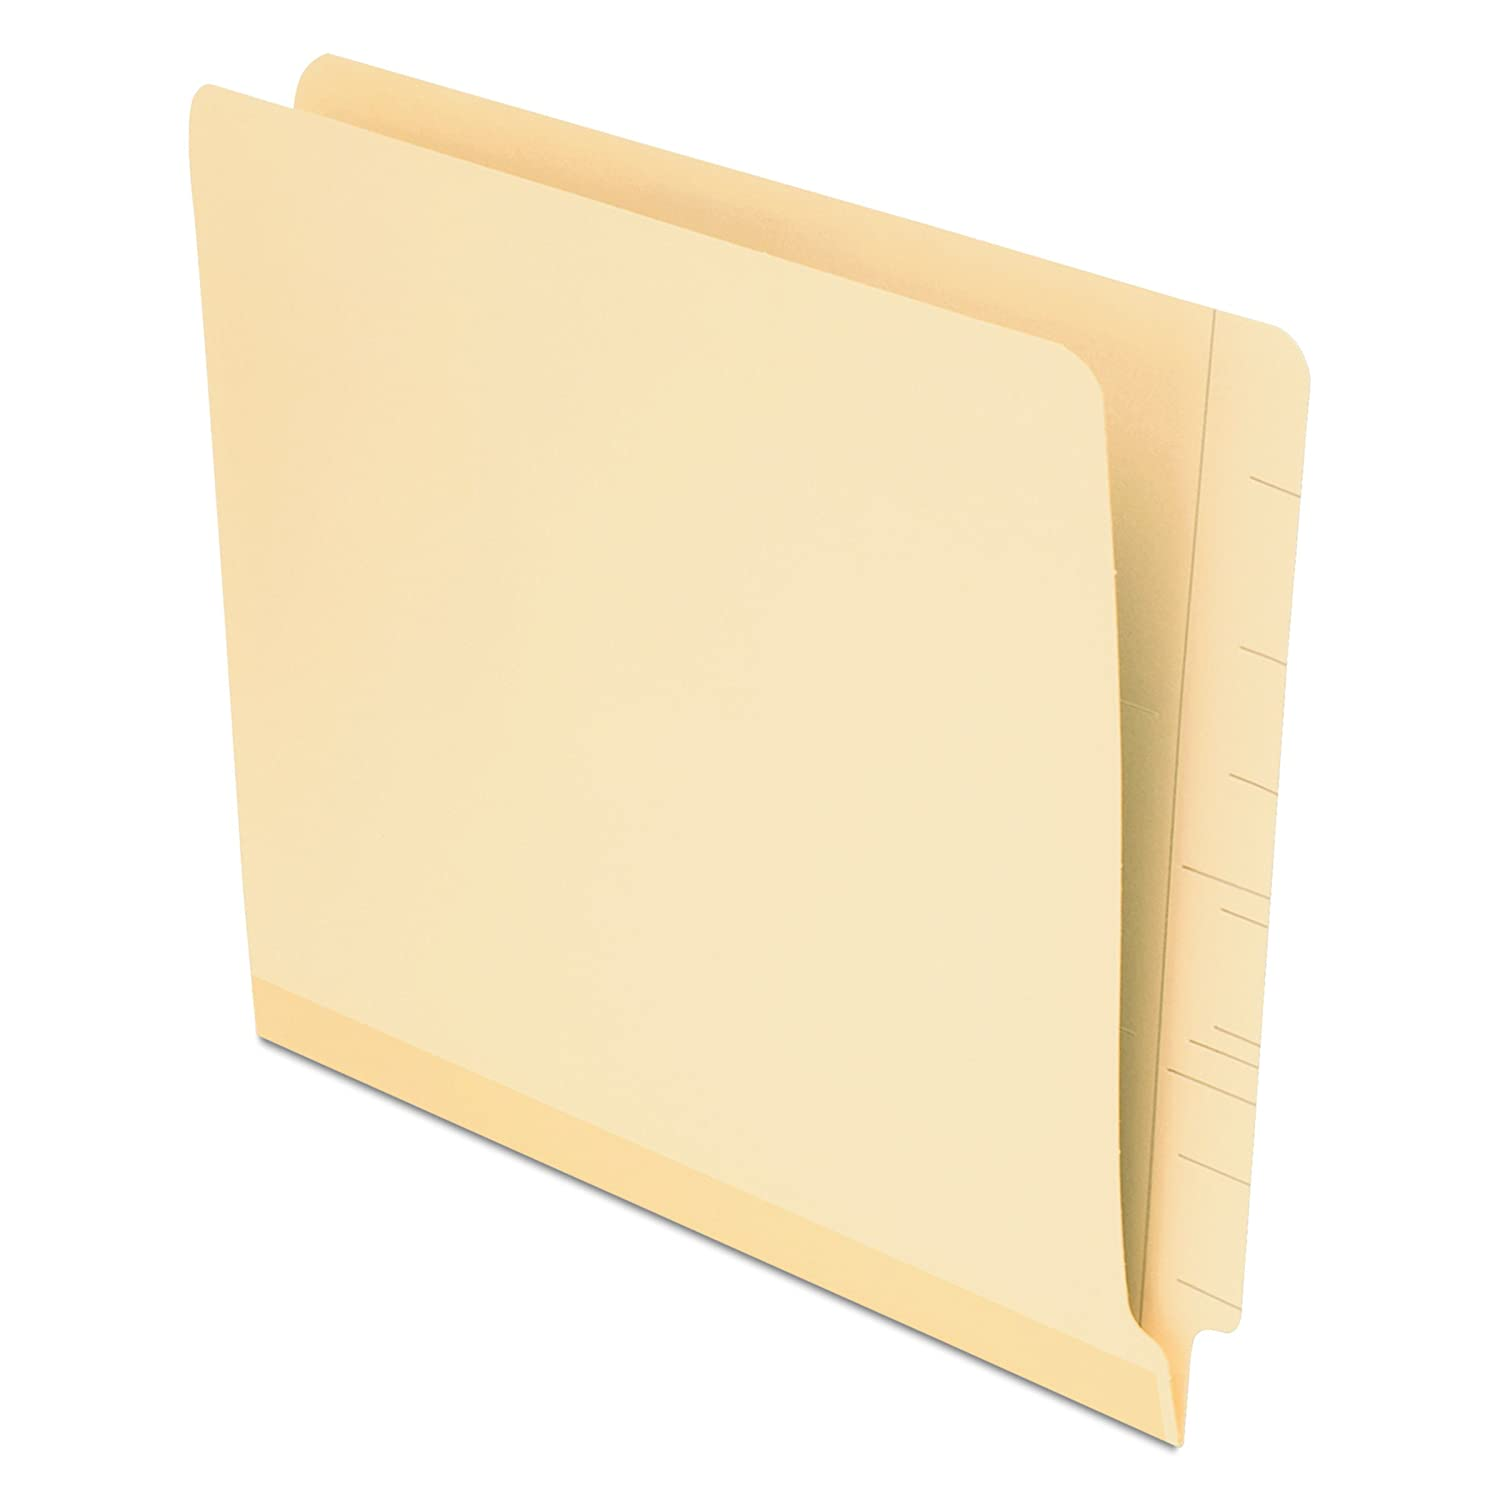 Pendaflex Laminated Spine End Tab Folders, Letter Size, Manila, 100 per Box (11035) Esselte